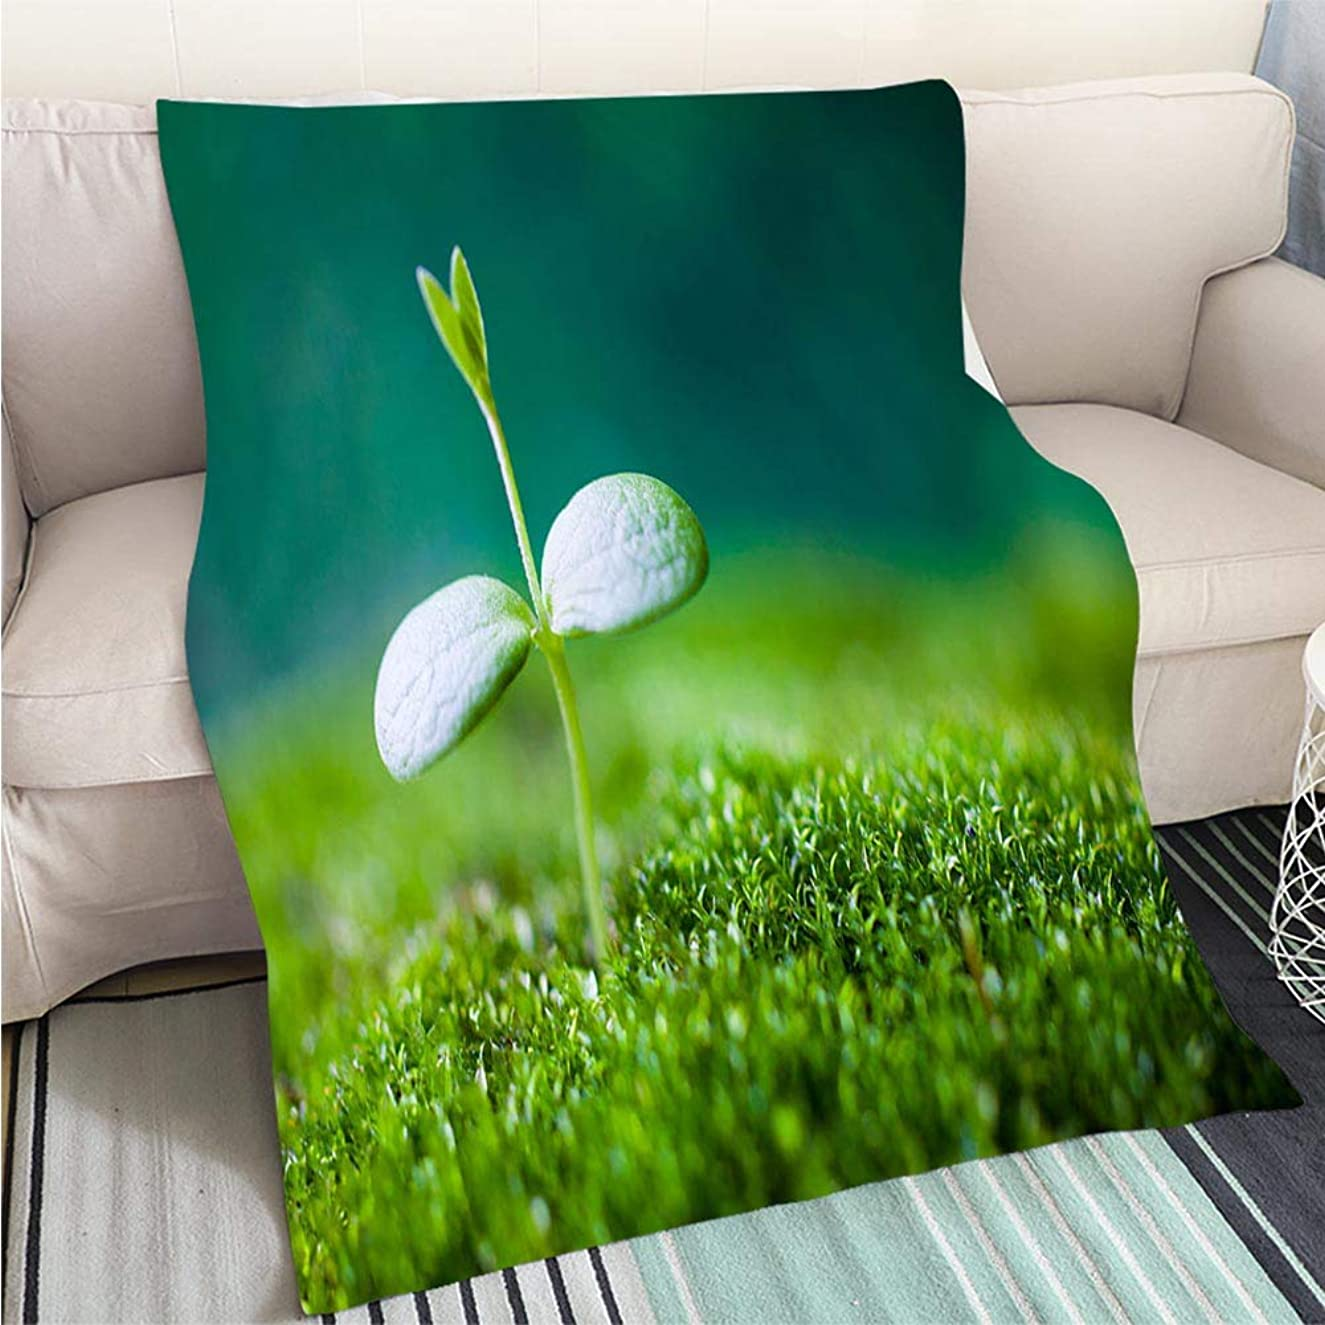 Art Design Photos Cool Quilt Sprout Growing Hypoallergenic Blanket for Bed Couch Chair